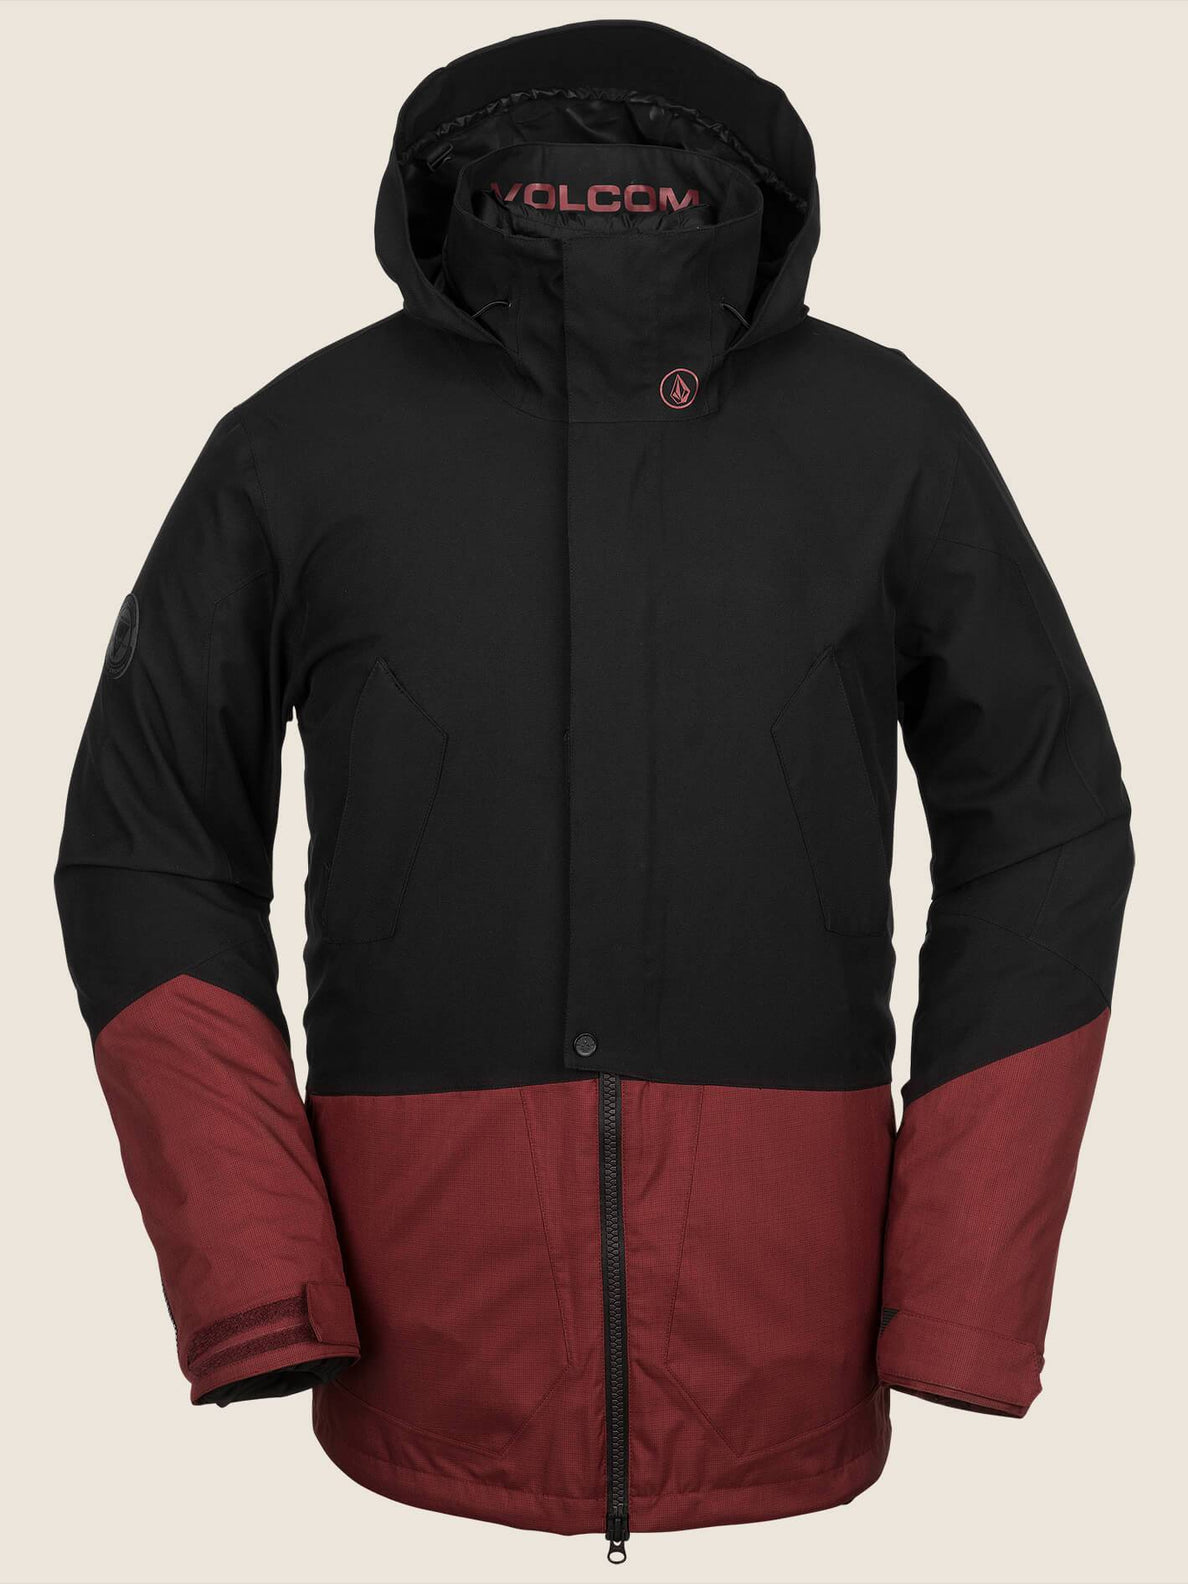 e944bce67a96a5 Pat Moore 3-In-1 Jacket - Snowboarding | Volcom Outdoor – Volcom France